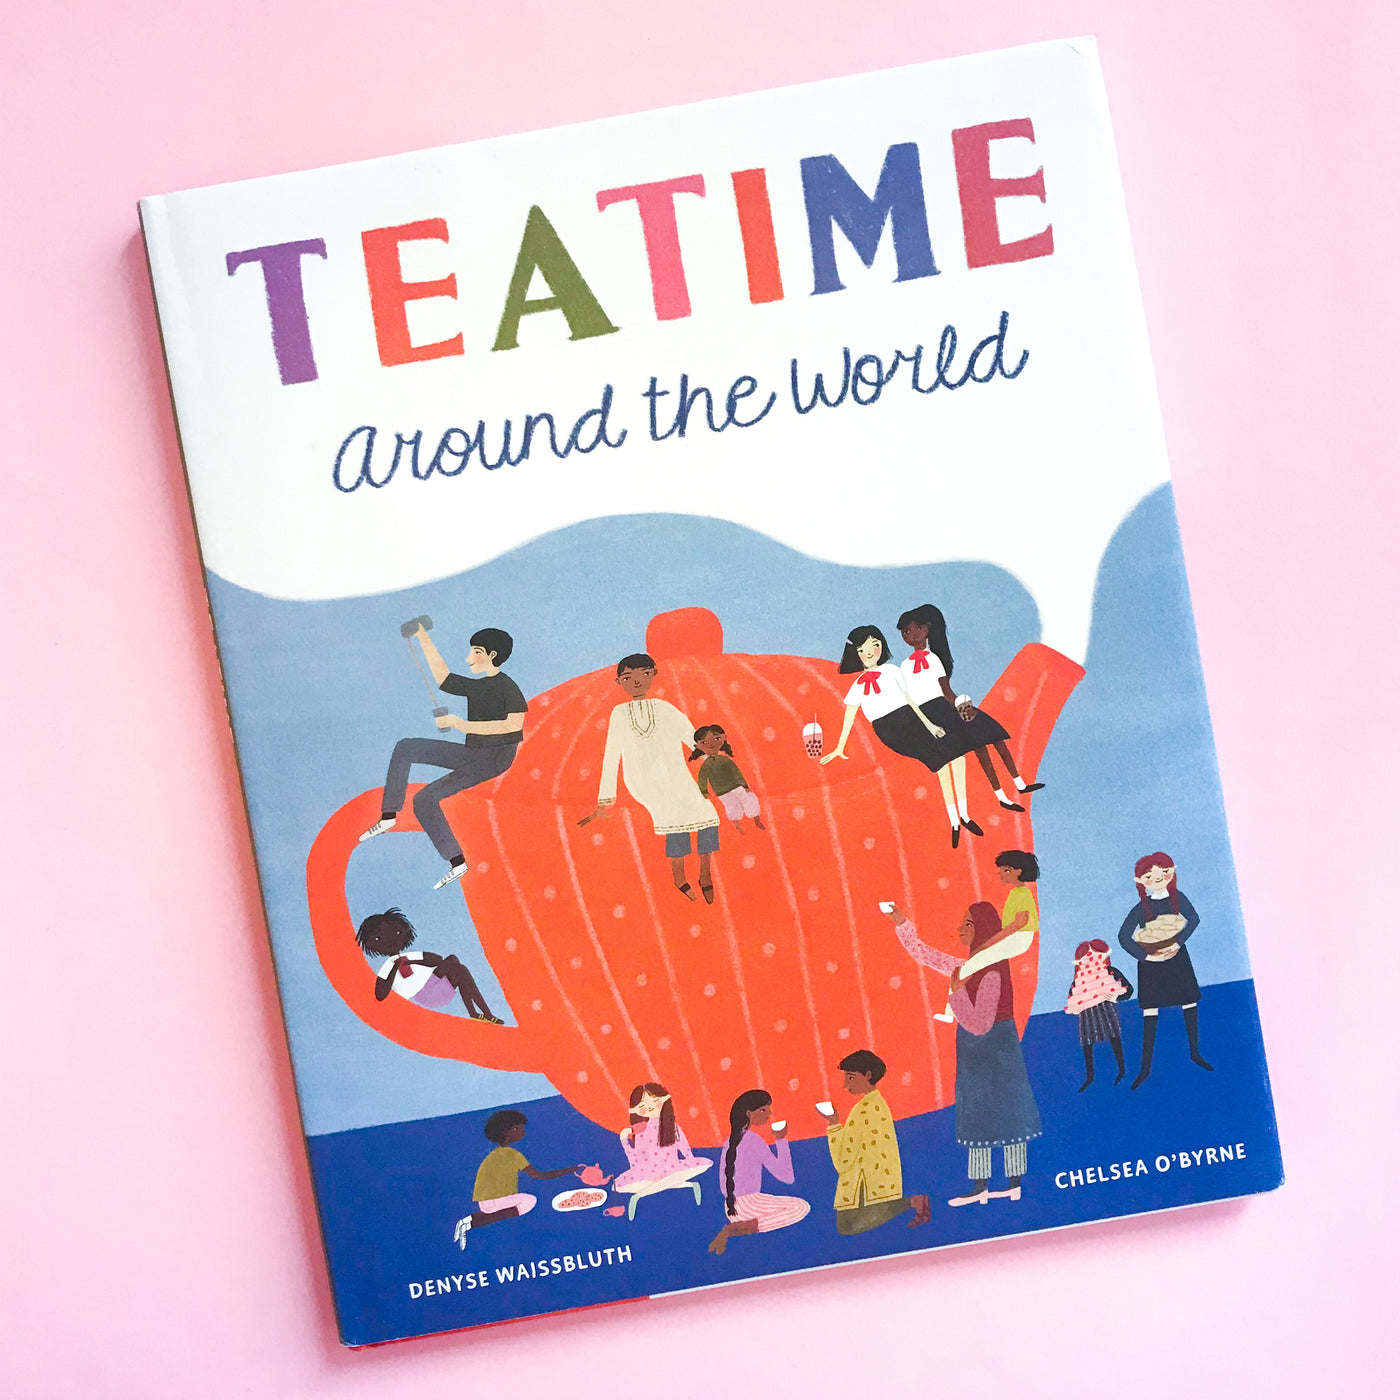 Teatime Around the World by Denyse Waissbluth and Chelsea O'Byrne